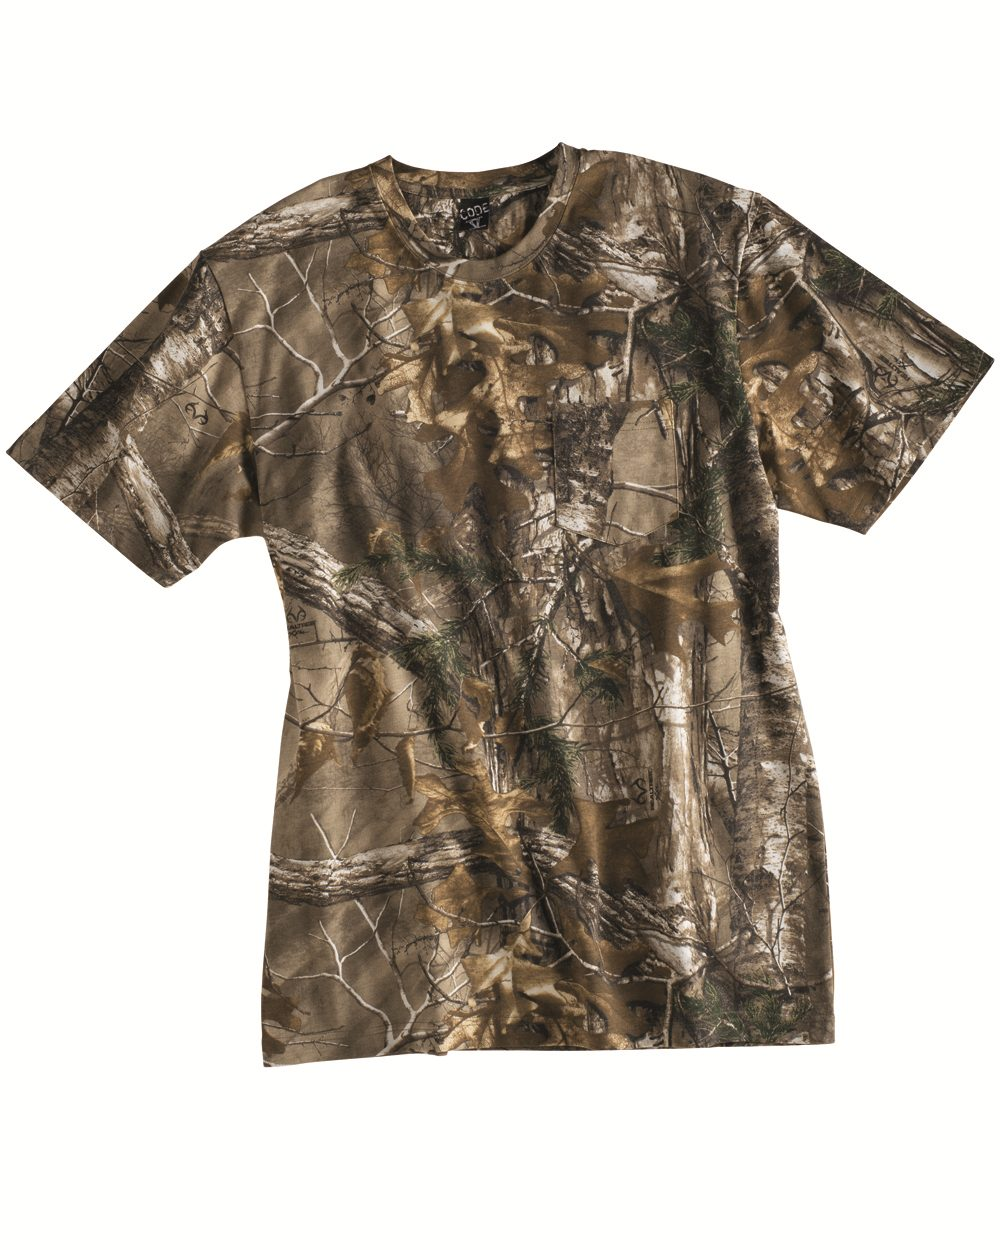 Code V Realtree® Camouflage Short Sleeve T-Shirt with a Pocket - 3982